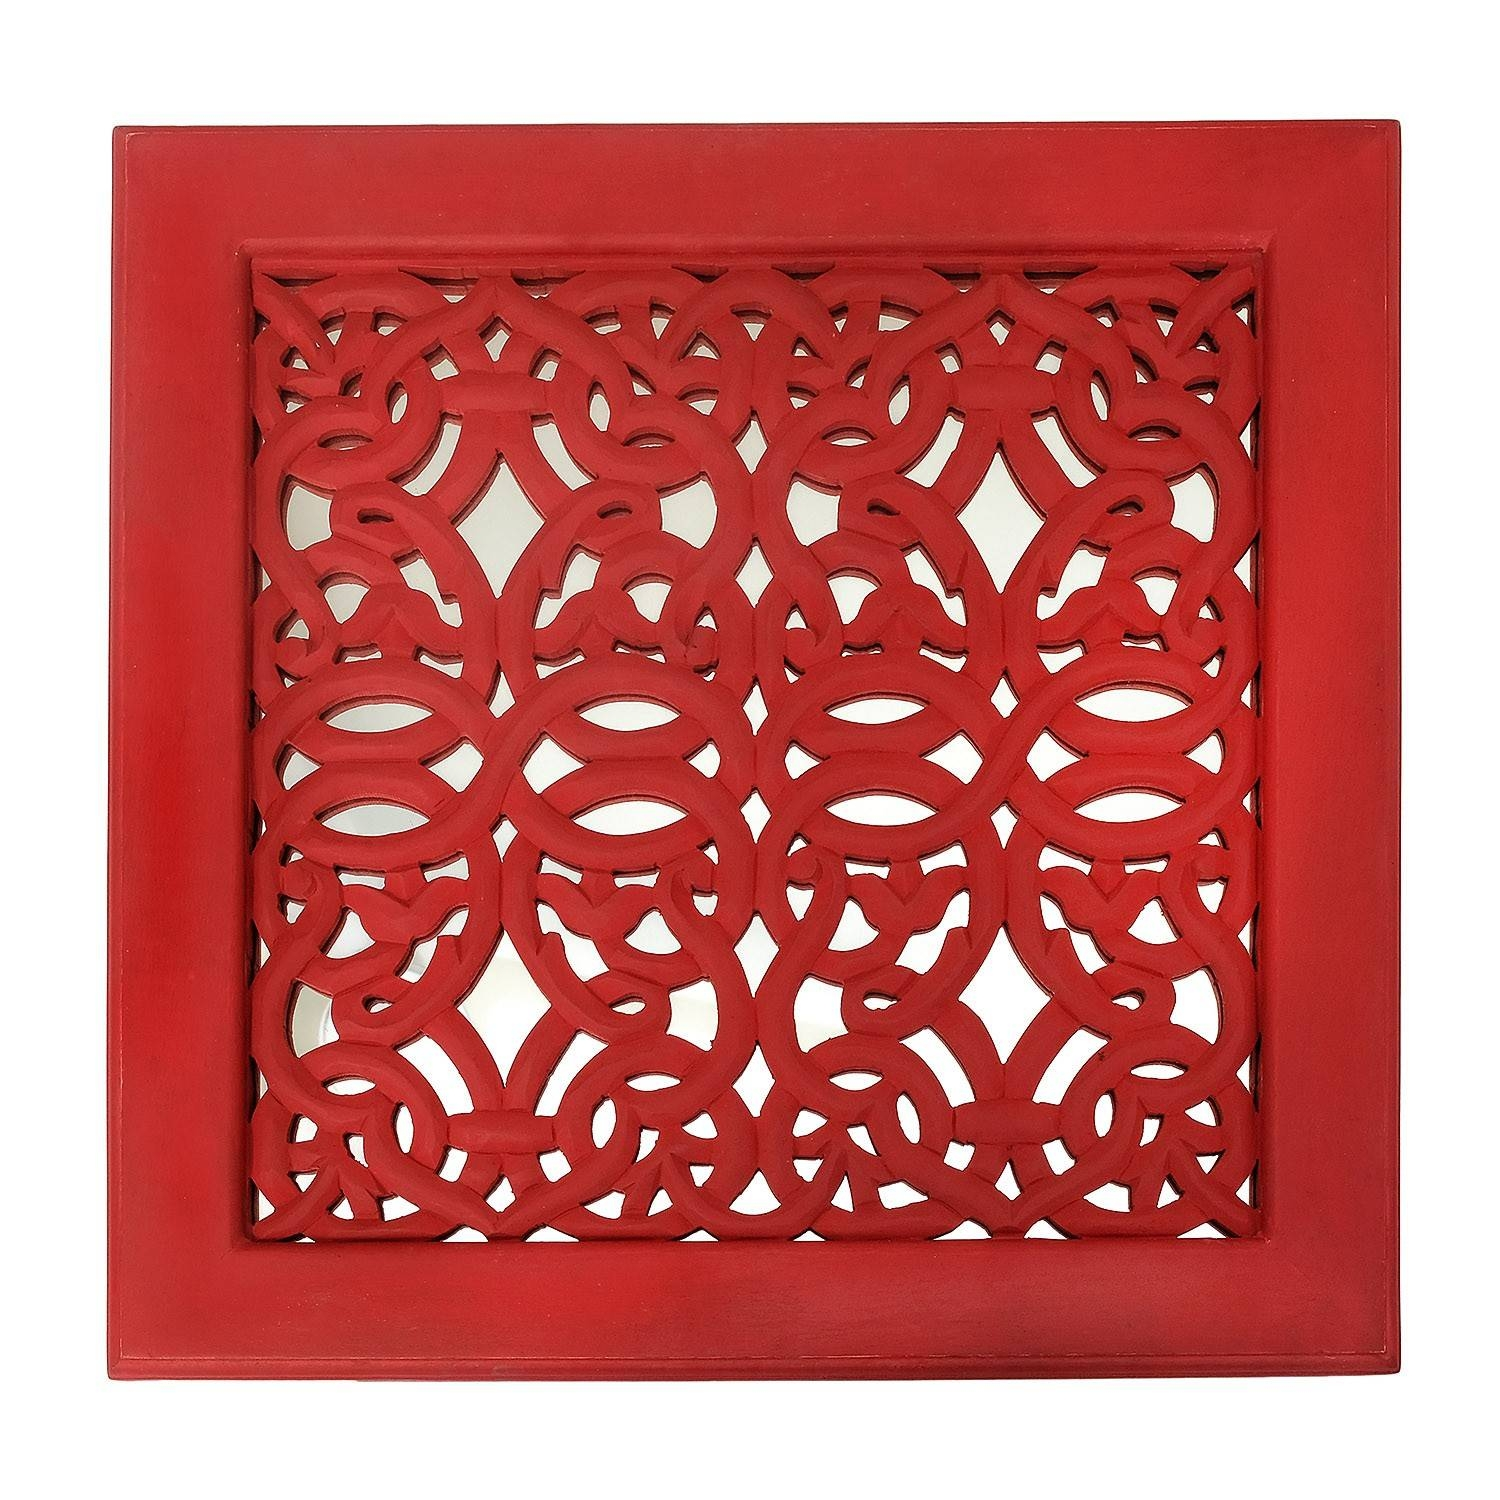 Fretwork Wall Art: Red (Set Of 3) | The Yellow Door Store With Most Up To Date Fretwork Wall Art (View 7 of 25)